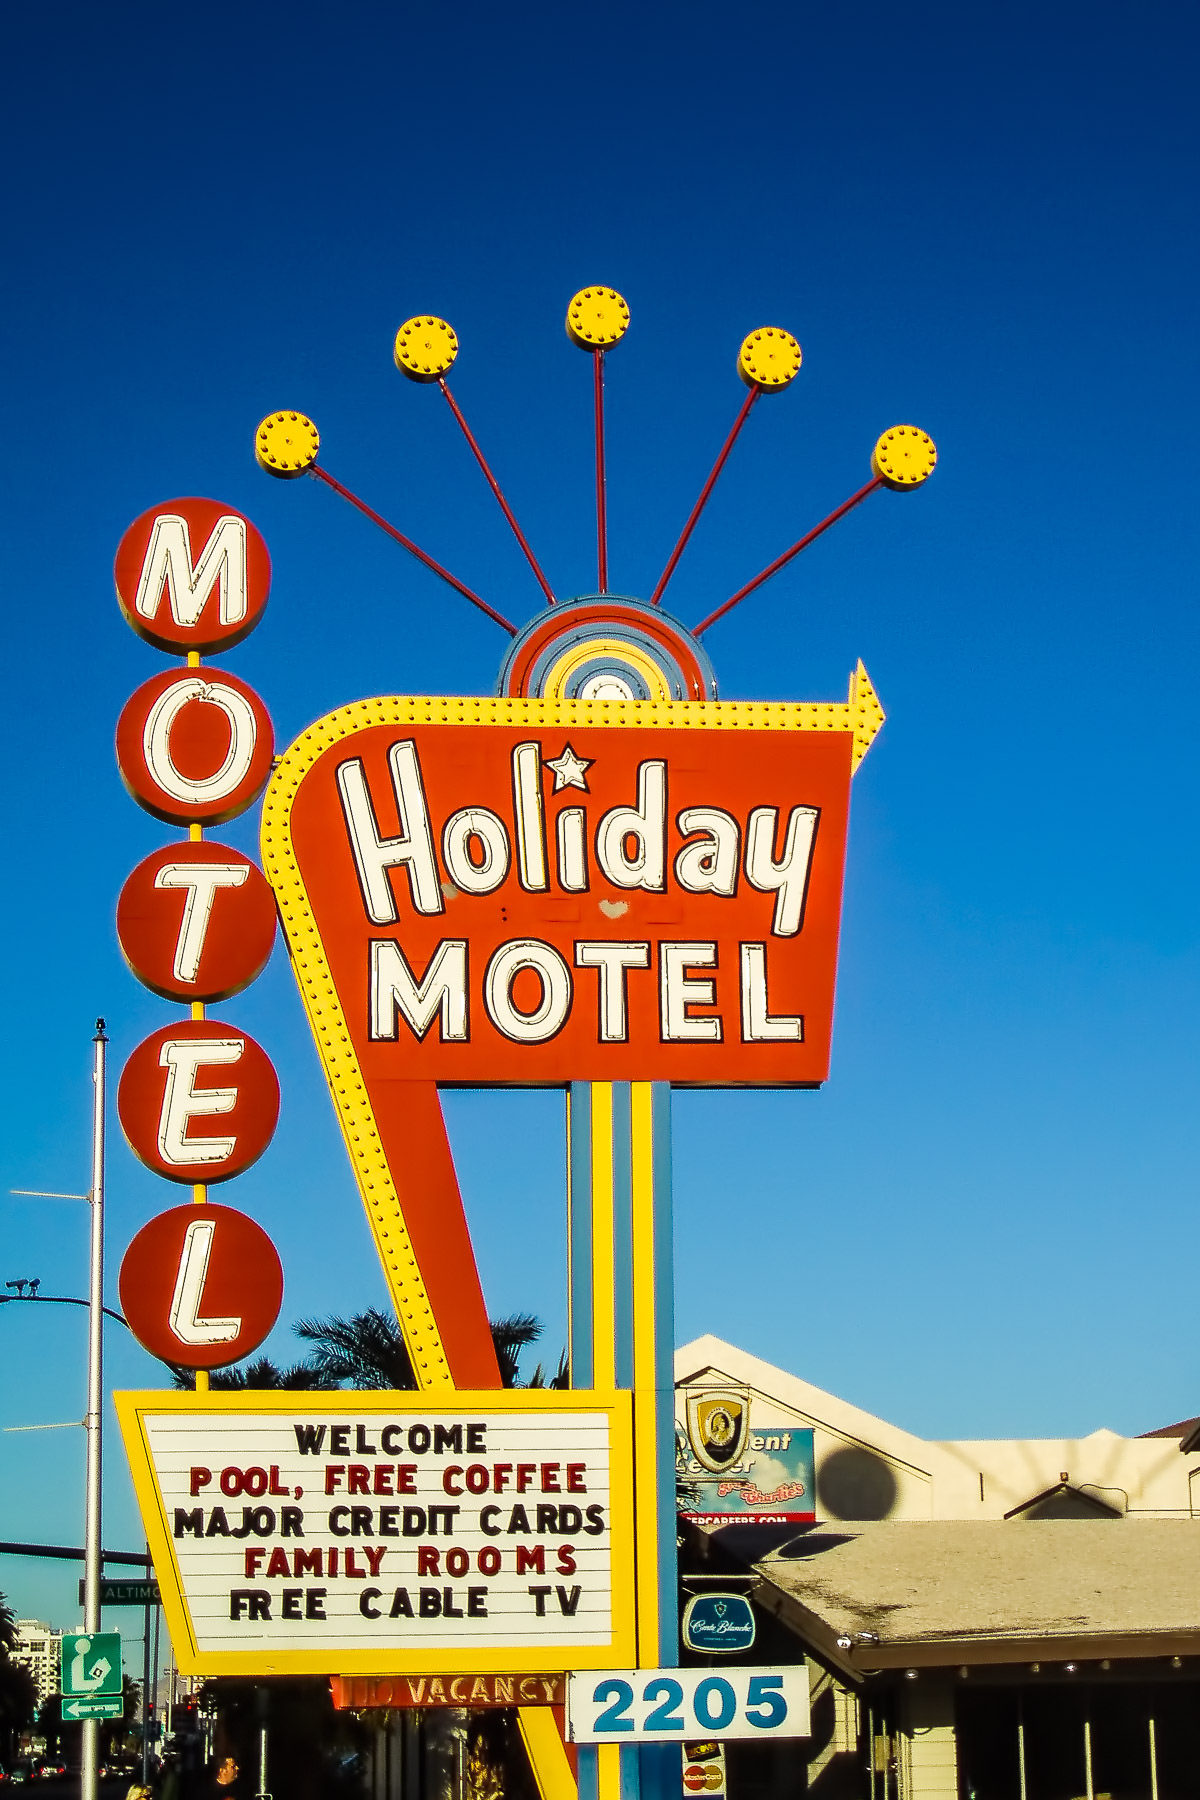 The Holiday Motel's sign in Las Vegas.